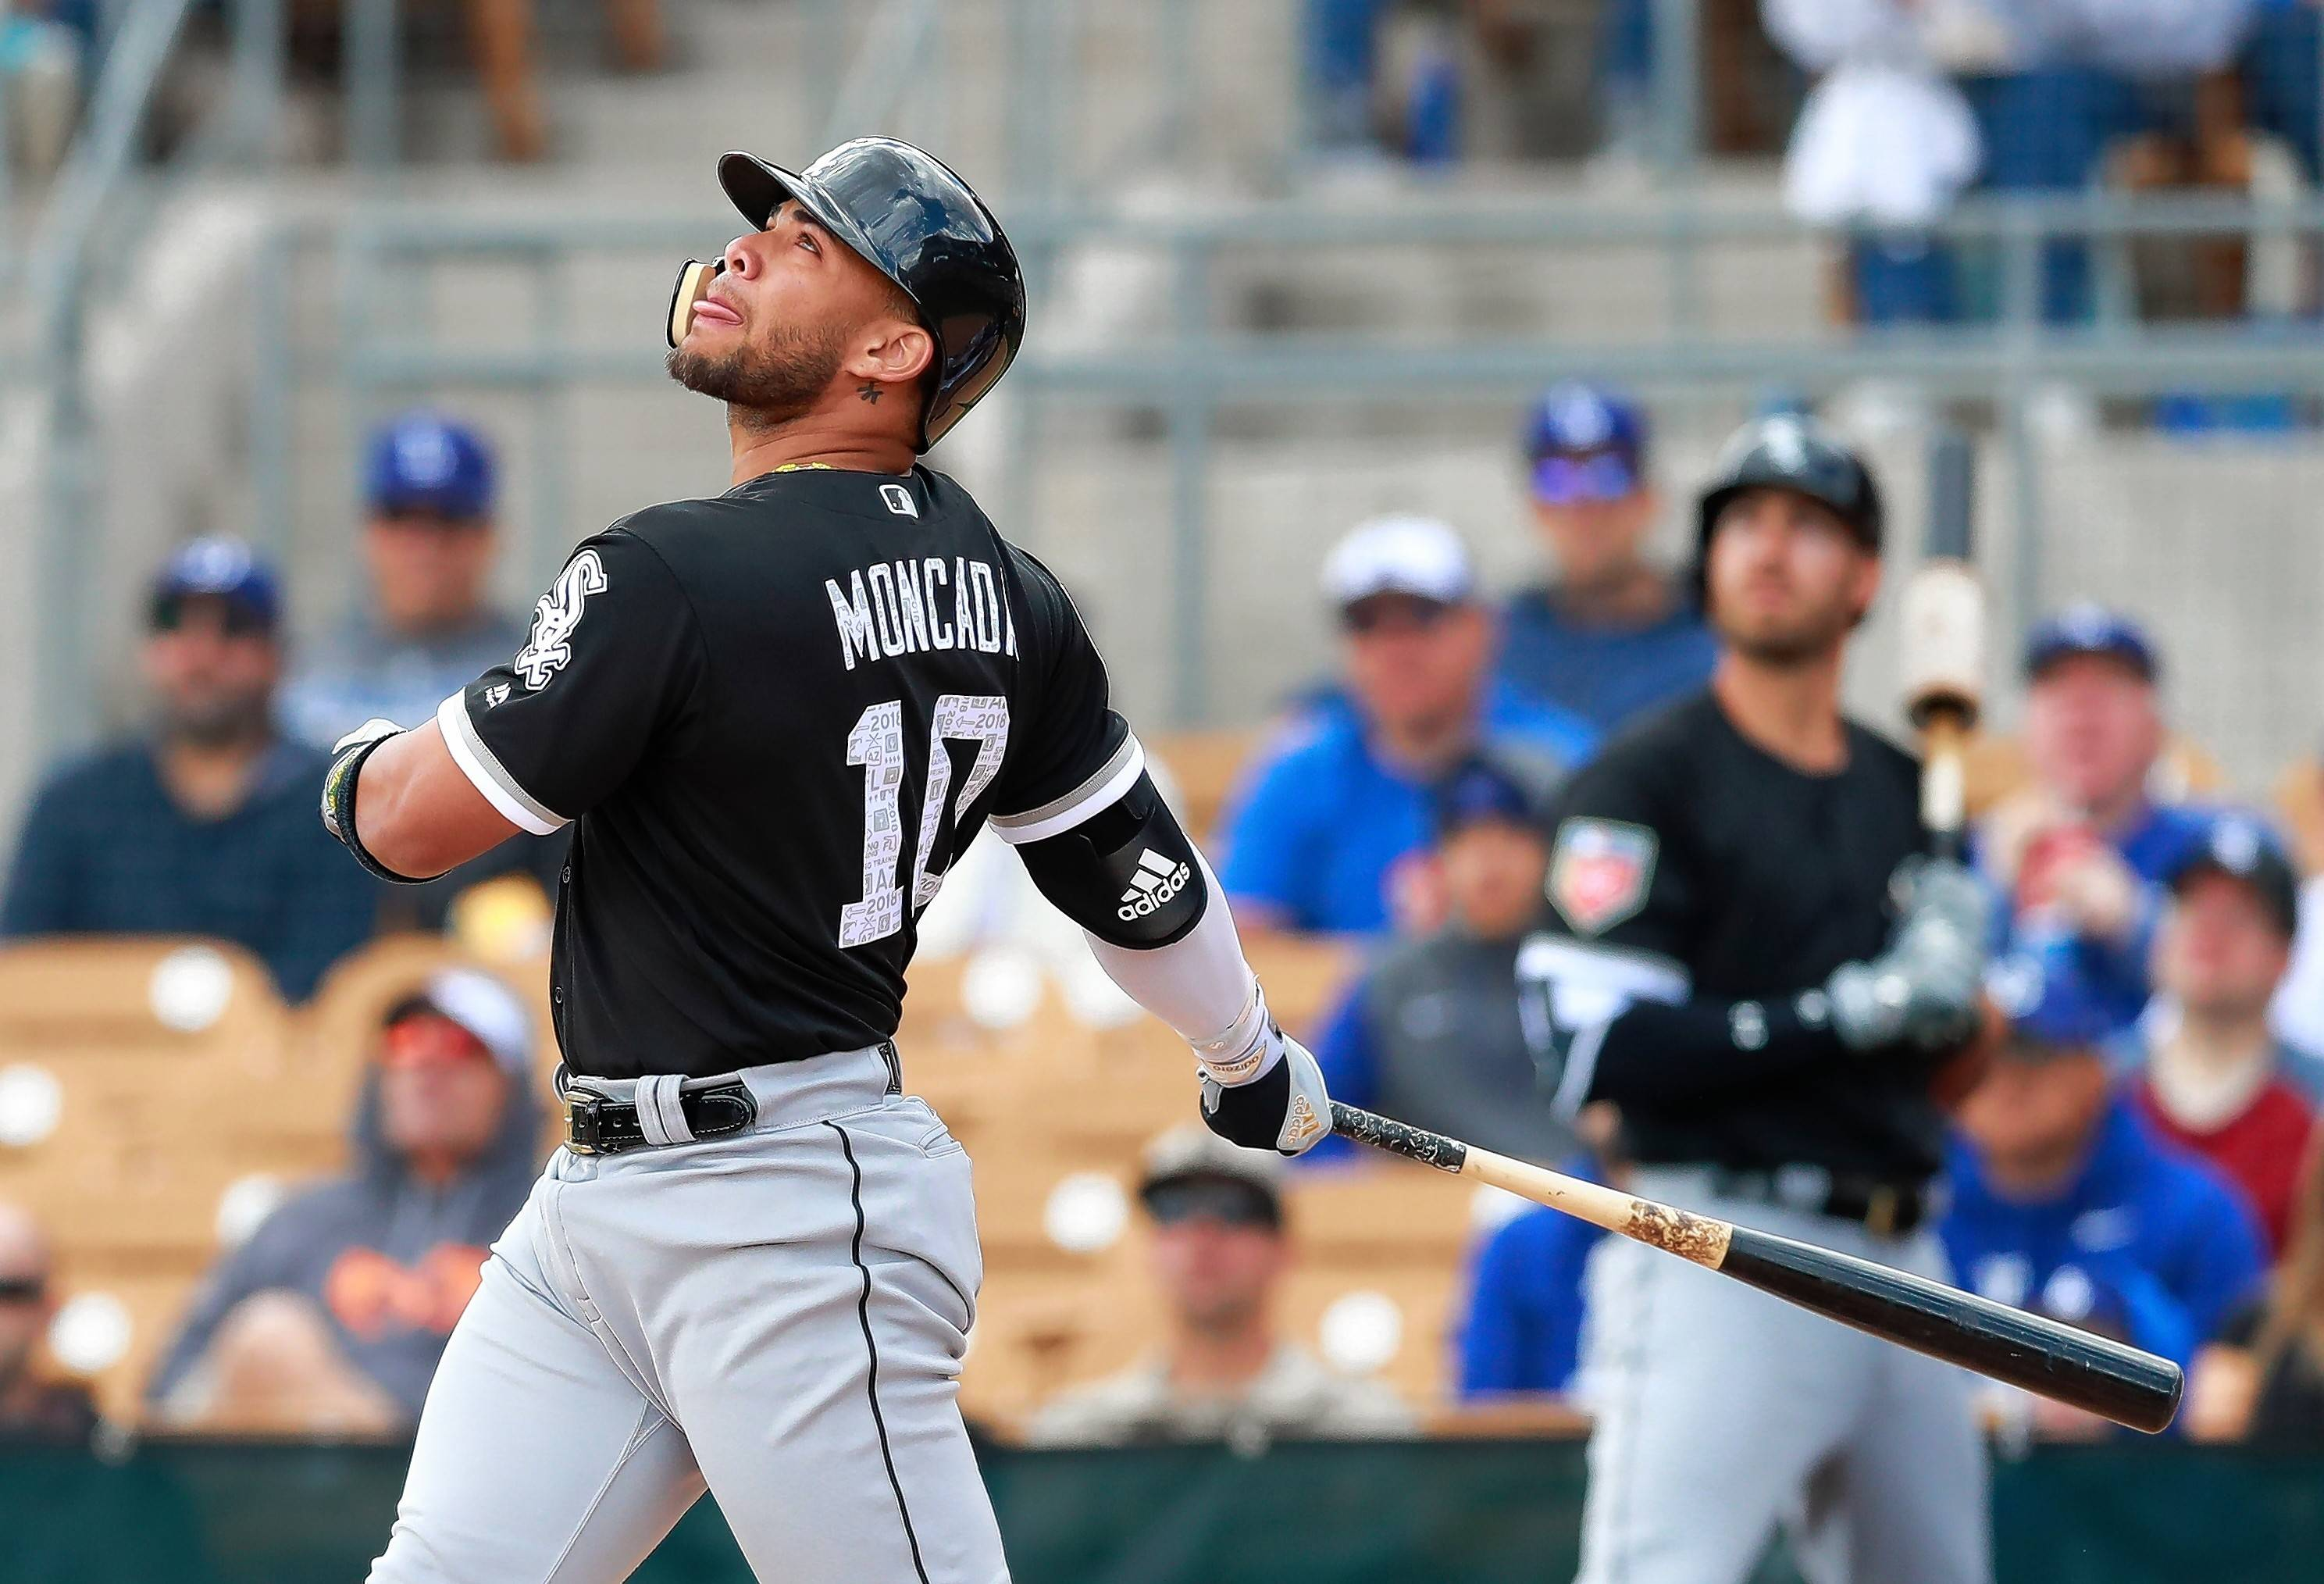 Moncada expecting success in first full season with Chicago White Sox